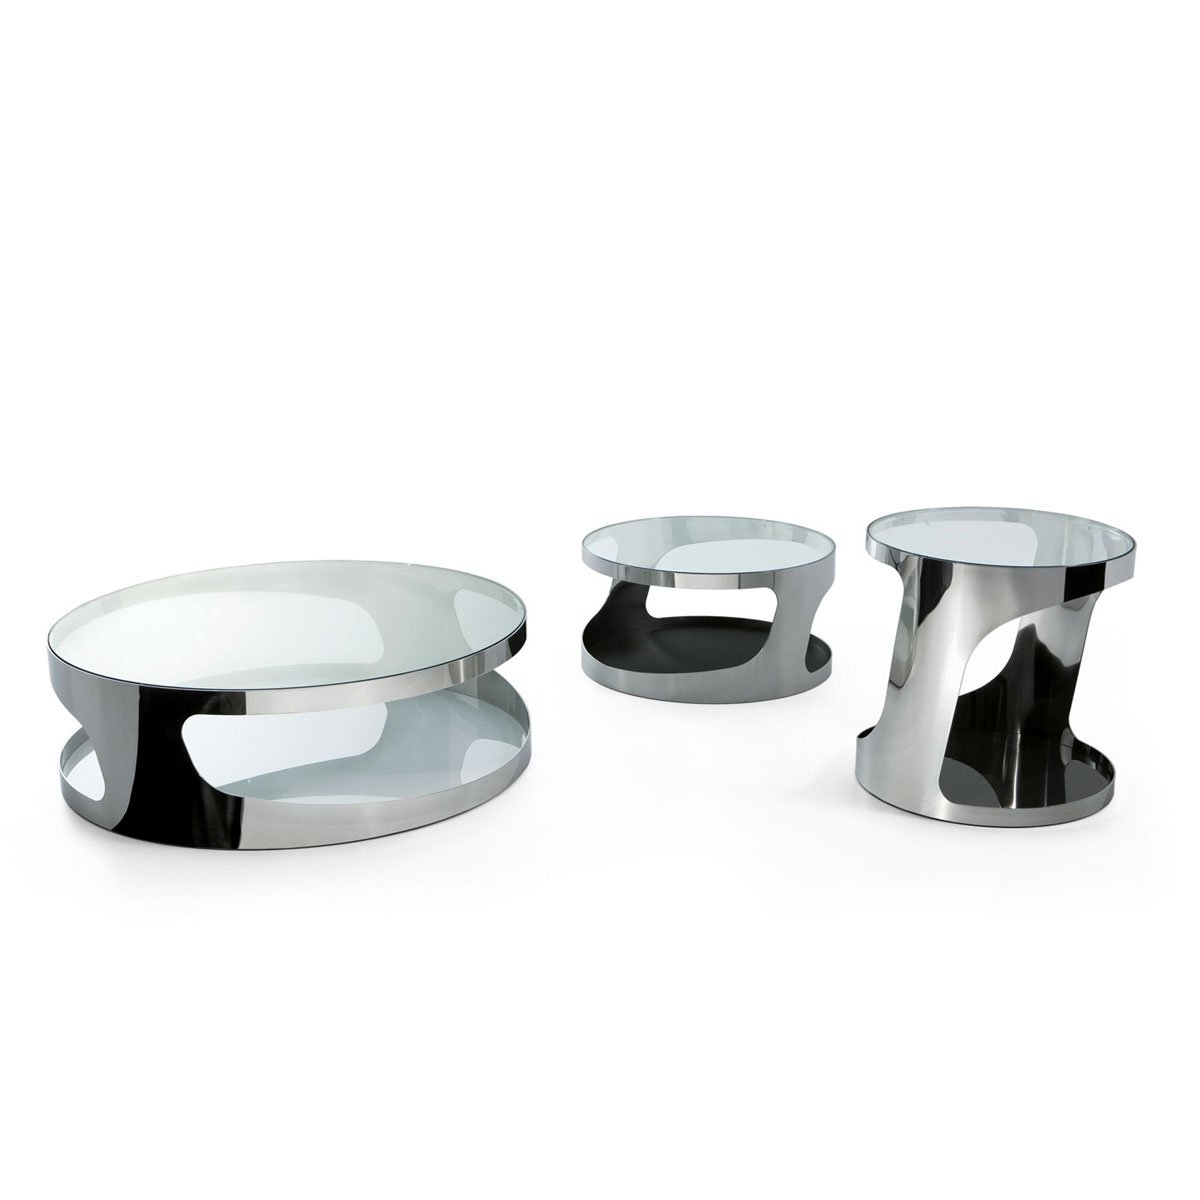 Tab round glass and metal coffee table by gallotti radice klarity glass furniture Metal and glass coffee table